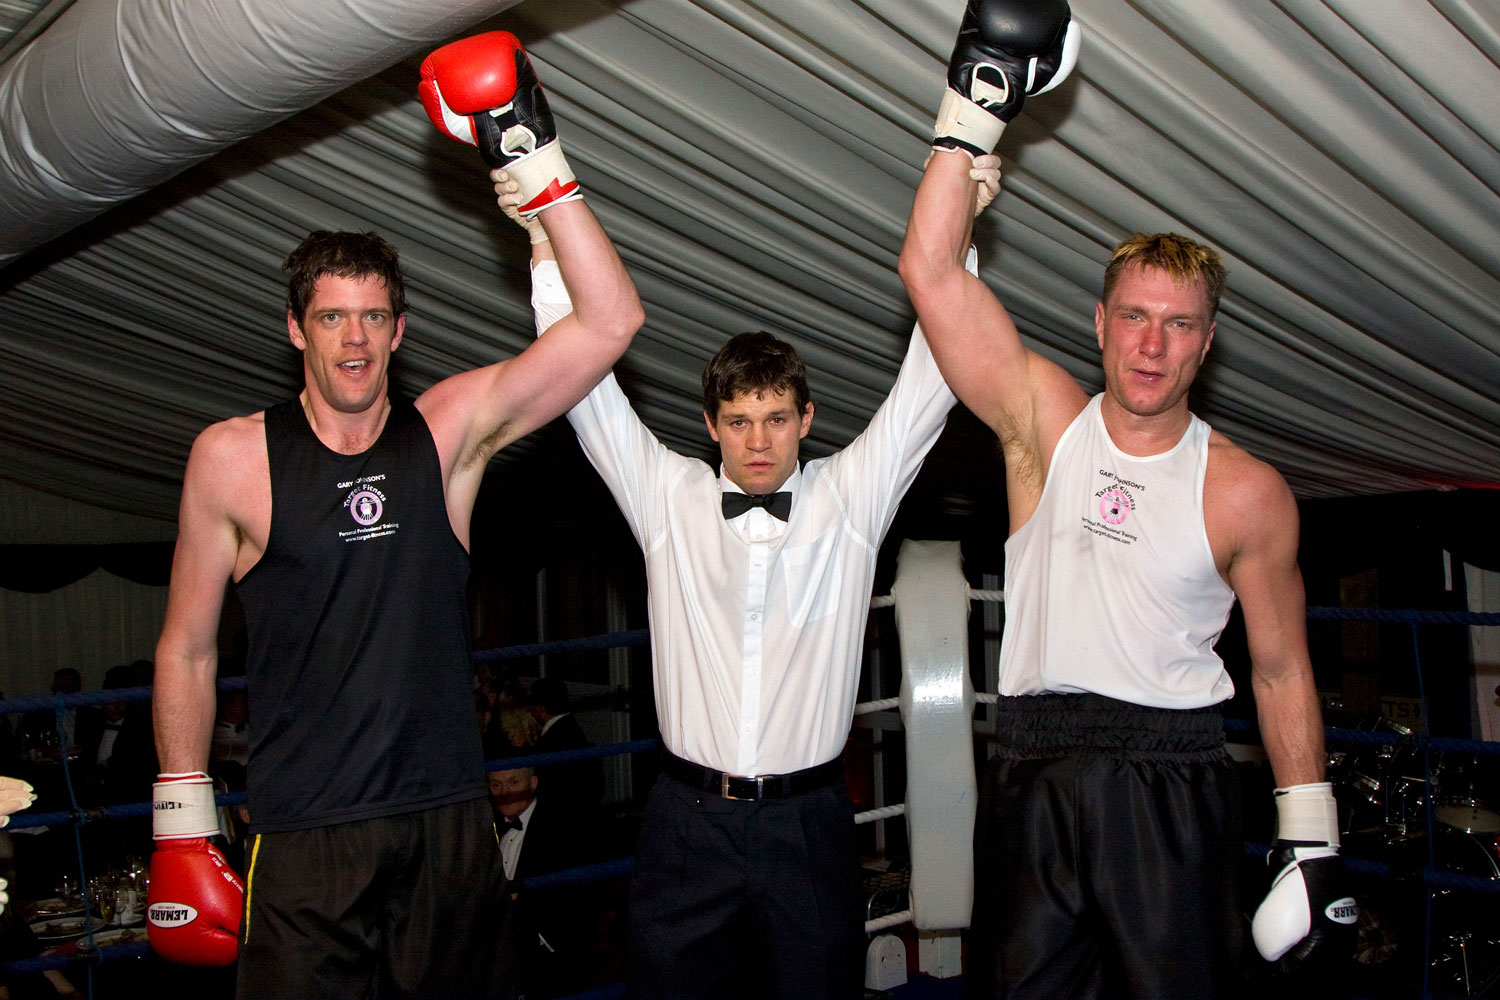 Charity Boxing gala for The Playbarn